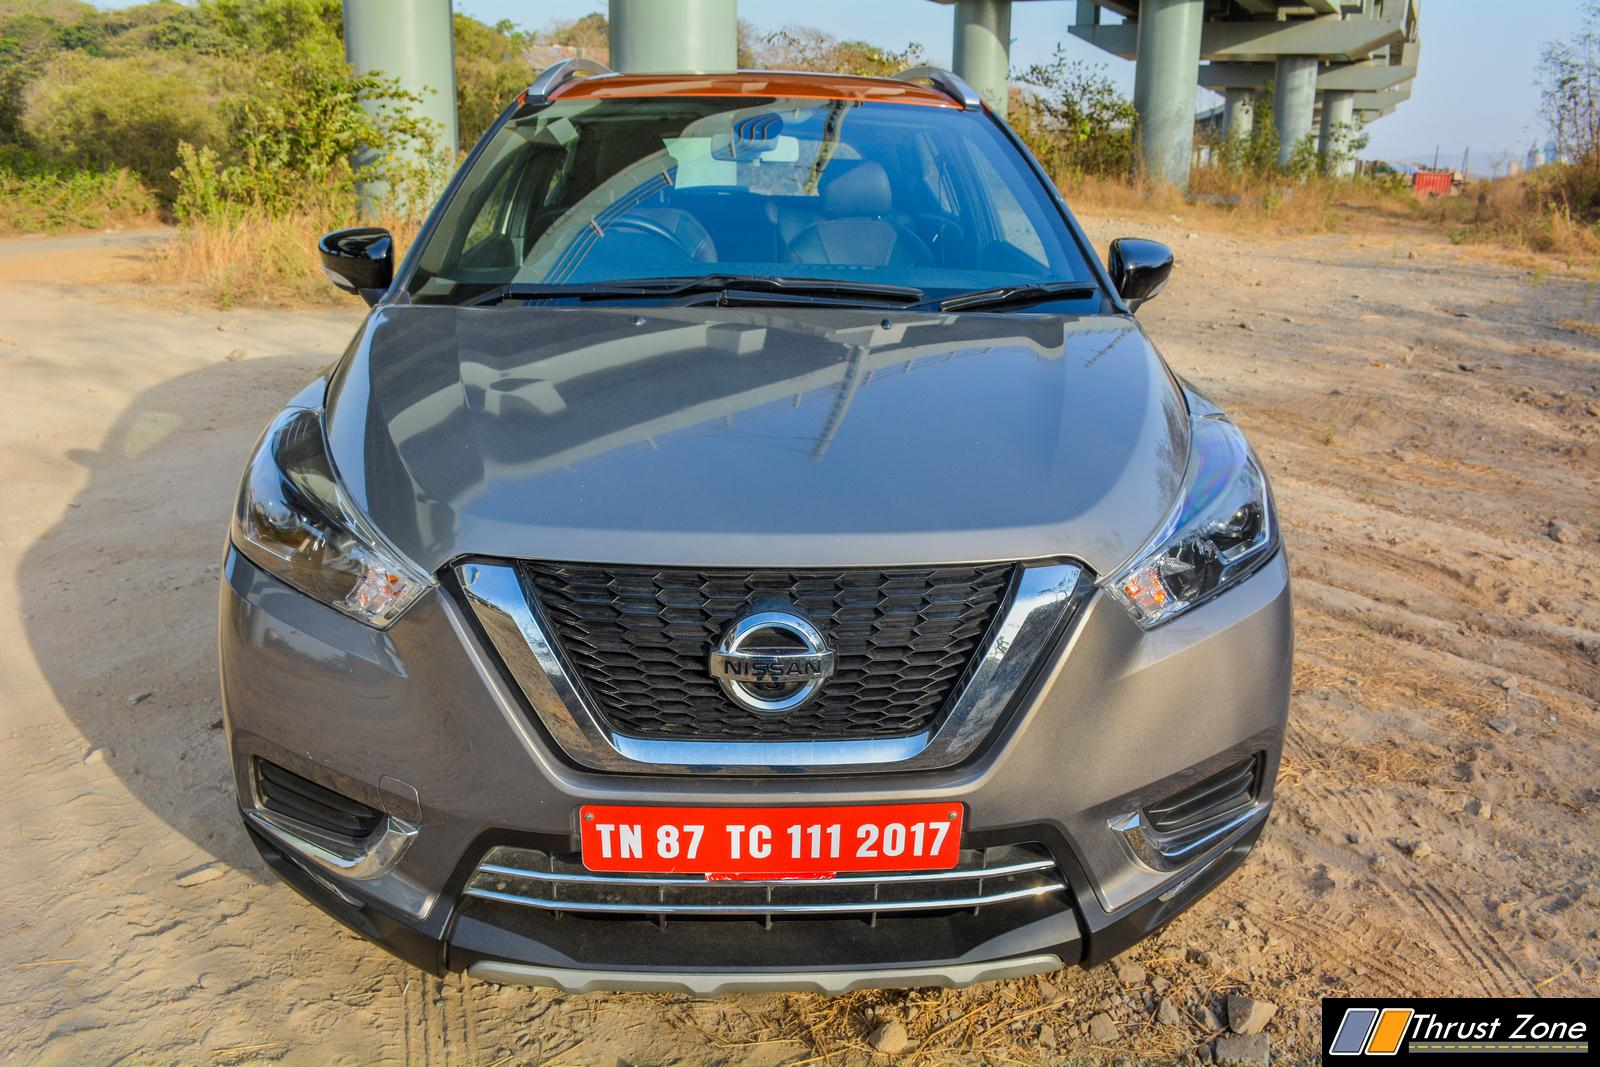 https://www.thrustzone.com/wp-content/uploads/2019/05/nissan-kicks-india-diesel-review-10.jpg